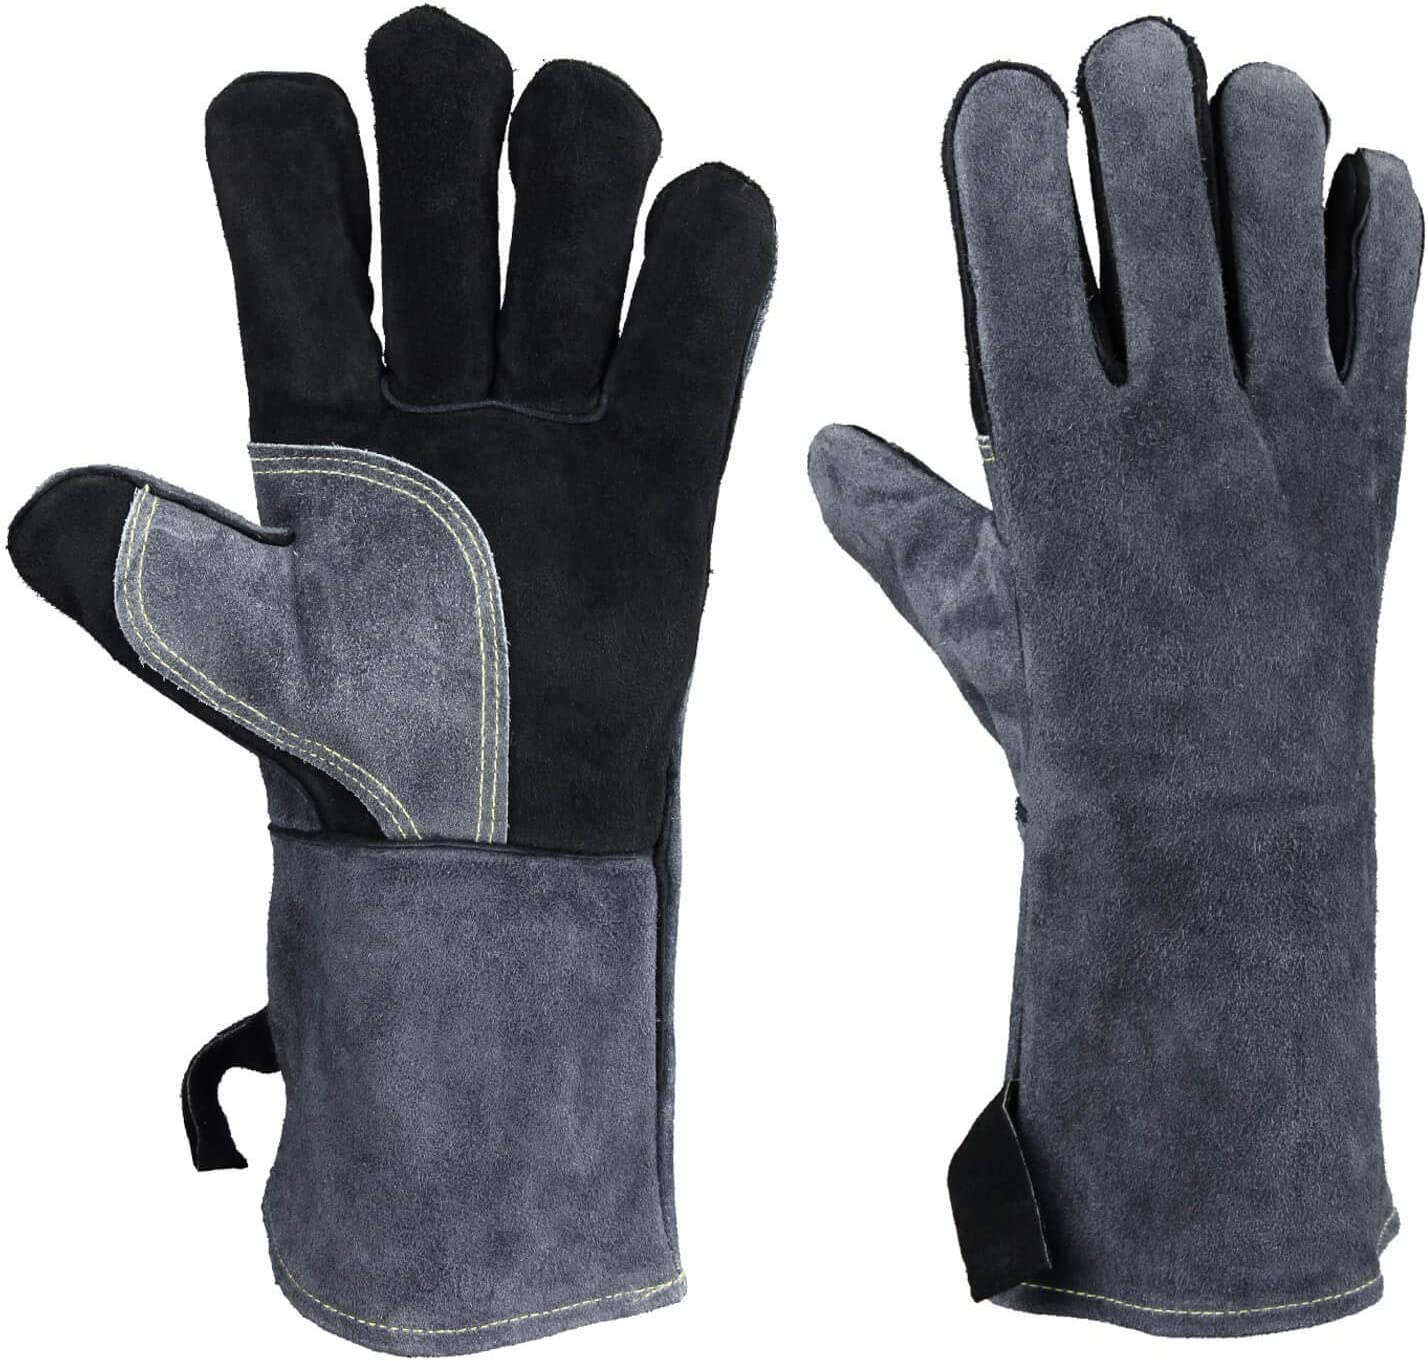 932°F Leather Heat Resistant Welding Gloves Flame Retardant BBQ Grill Glove f...